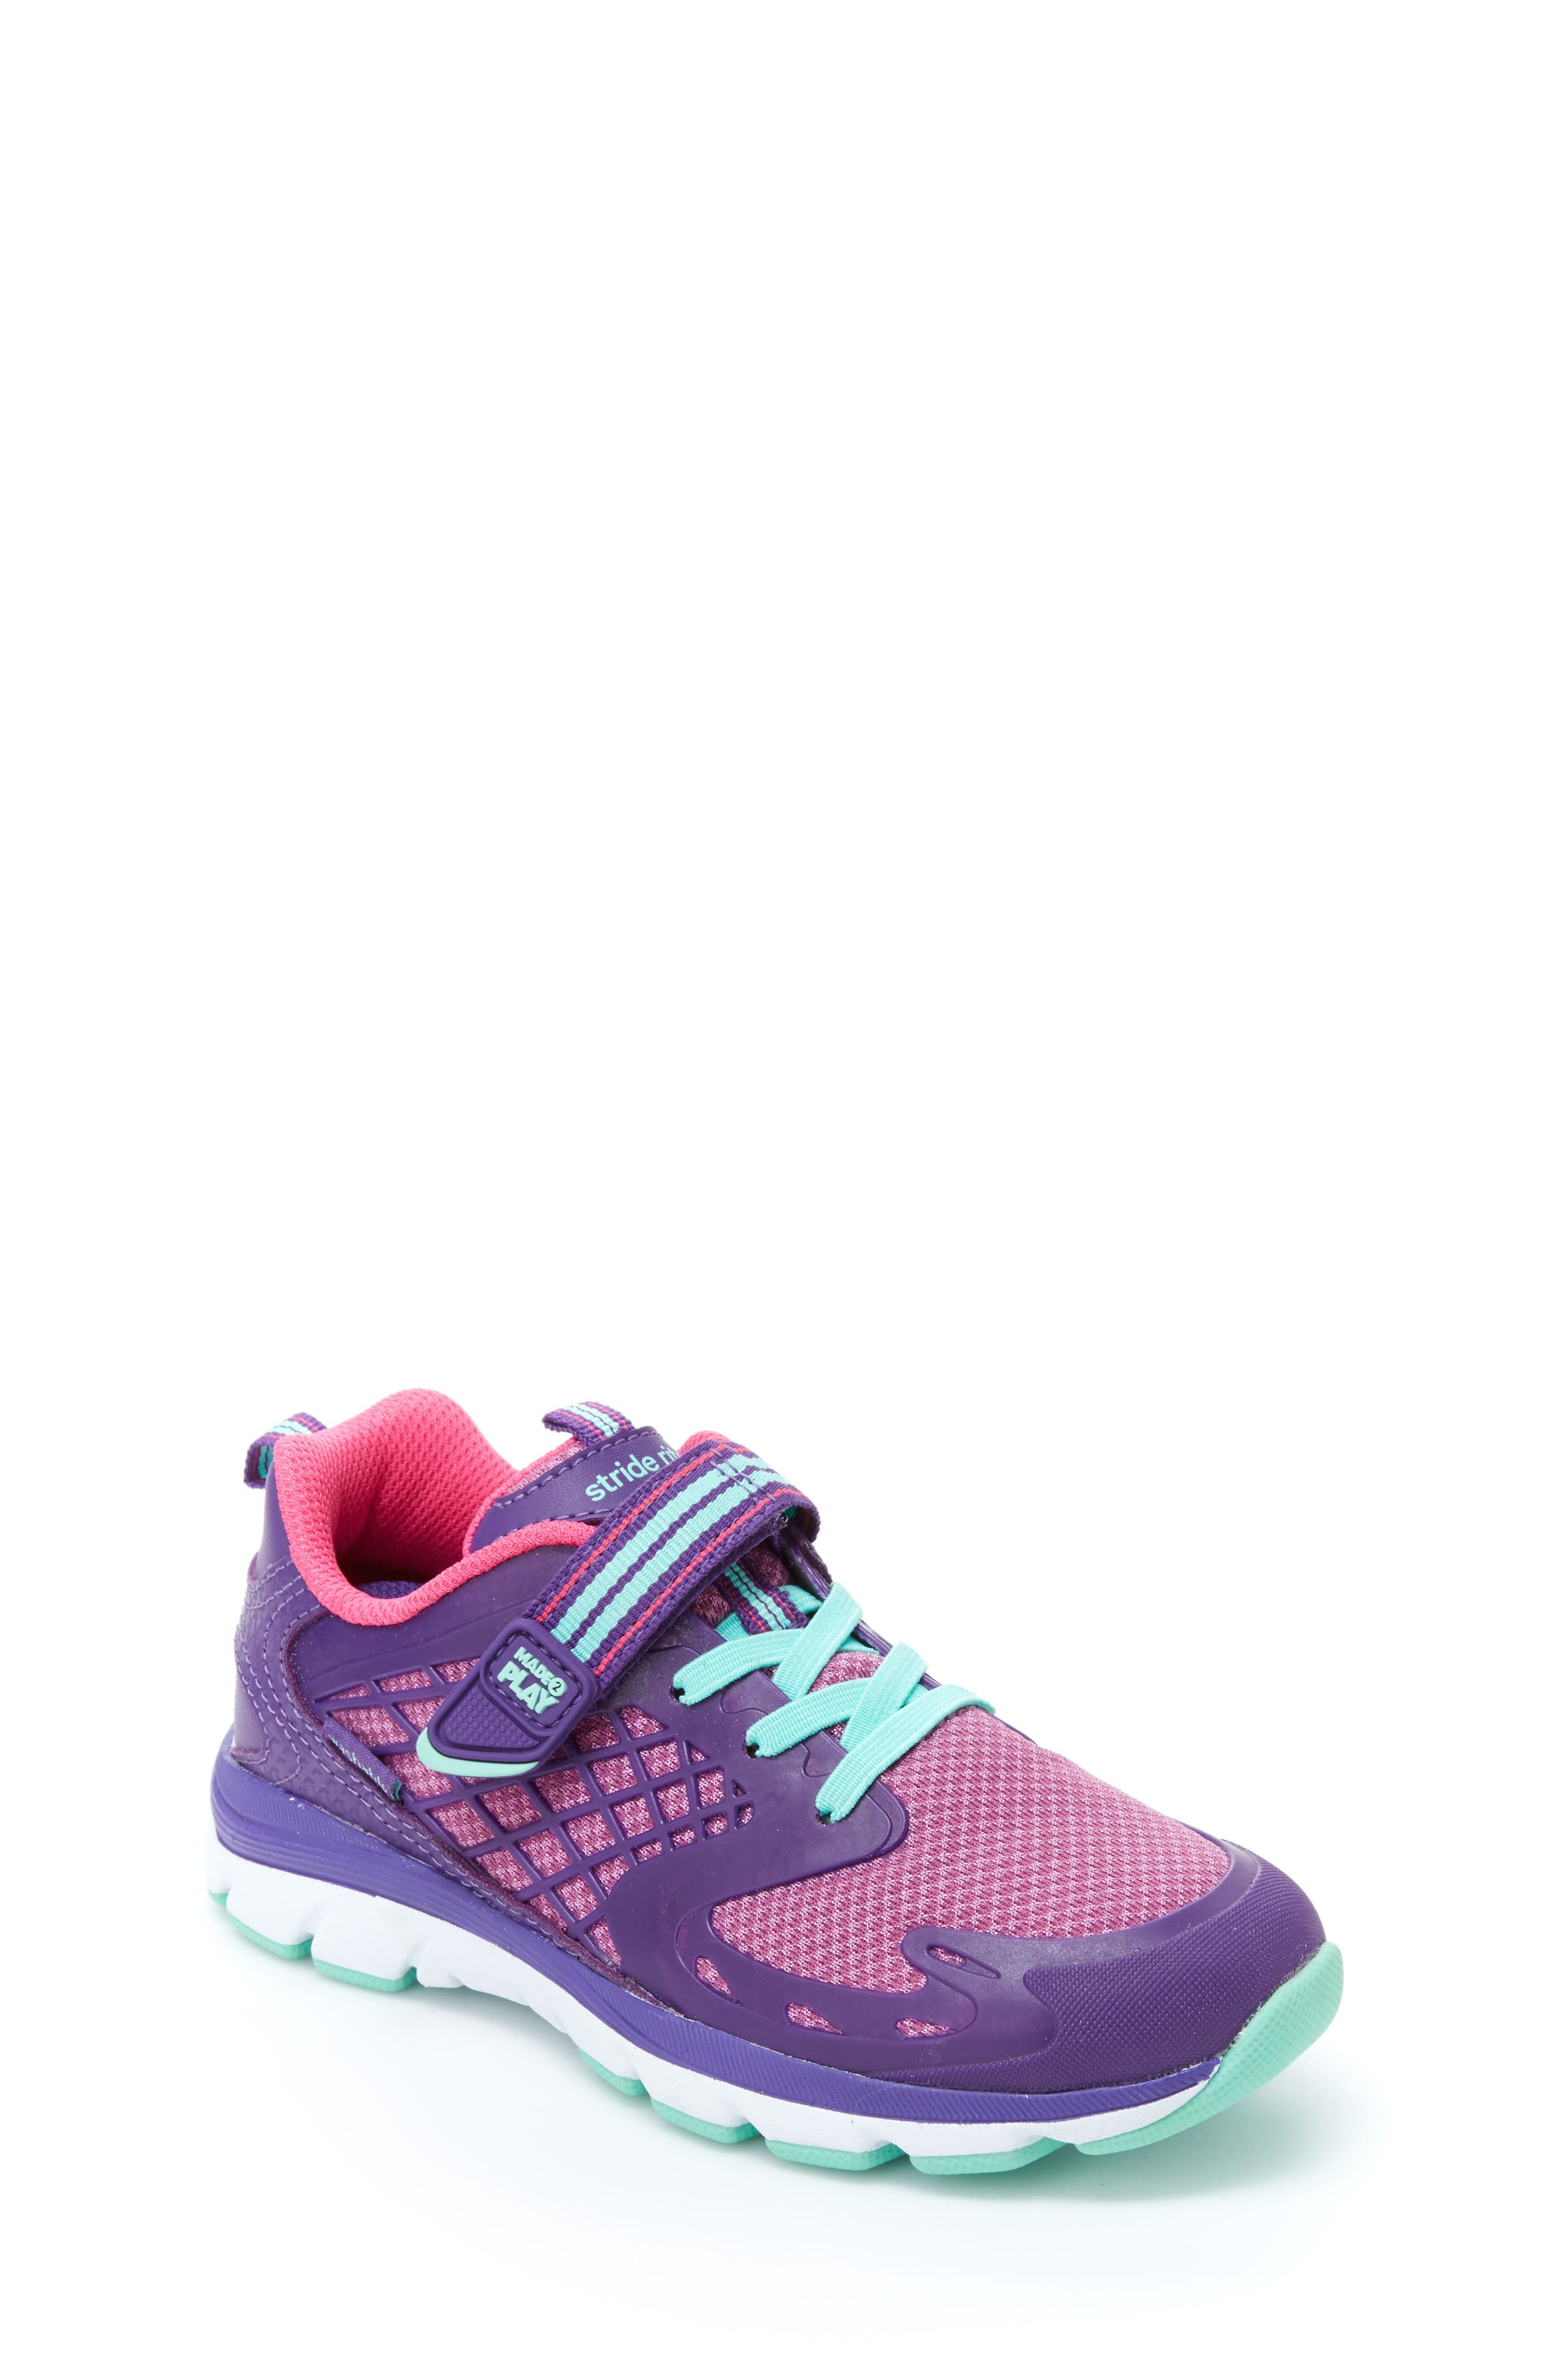 'Made2Play<sup>®</sup> Cannan Lace' Sneaker,                         Main,                         color, 500